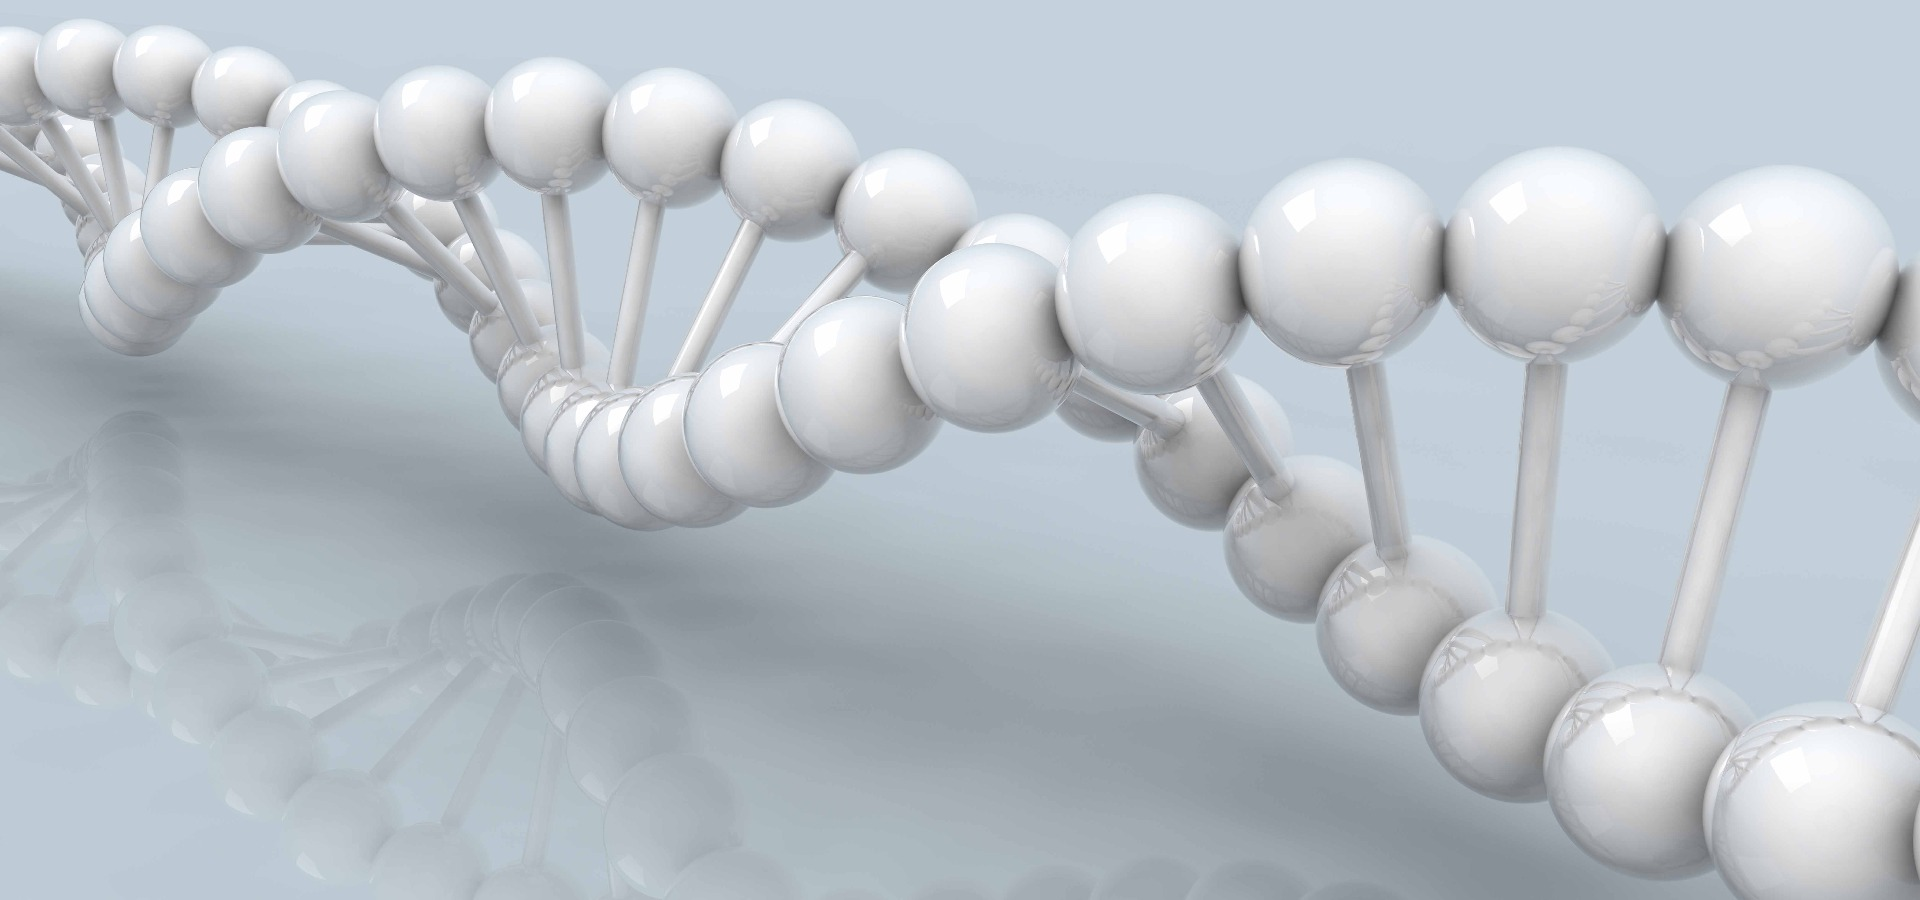 Everything you Need for RNA, DNA or Protein Purification